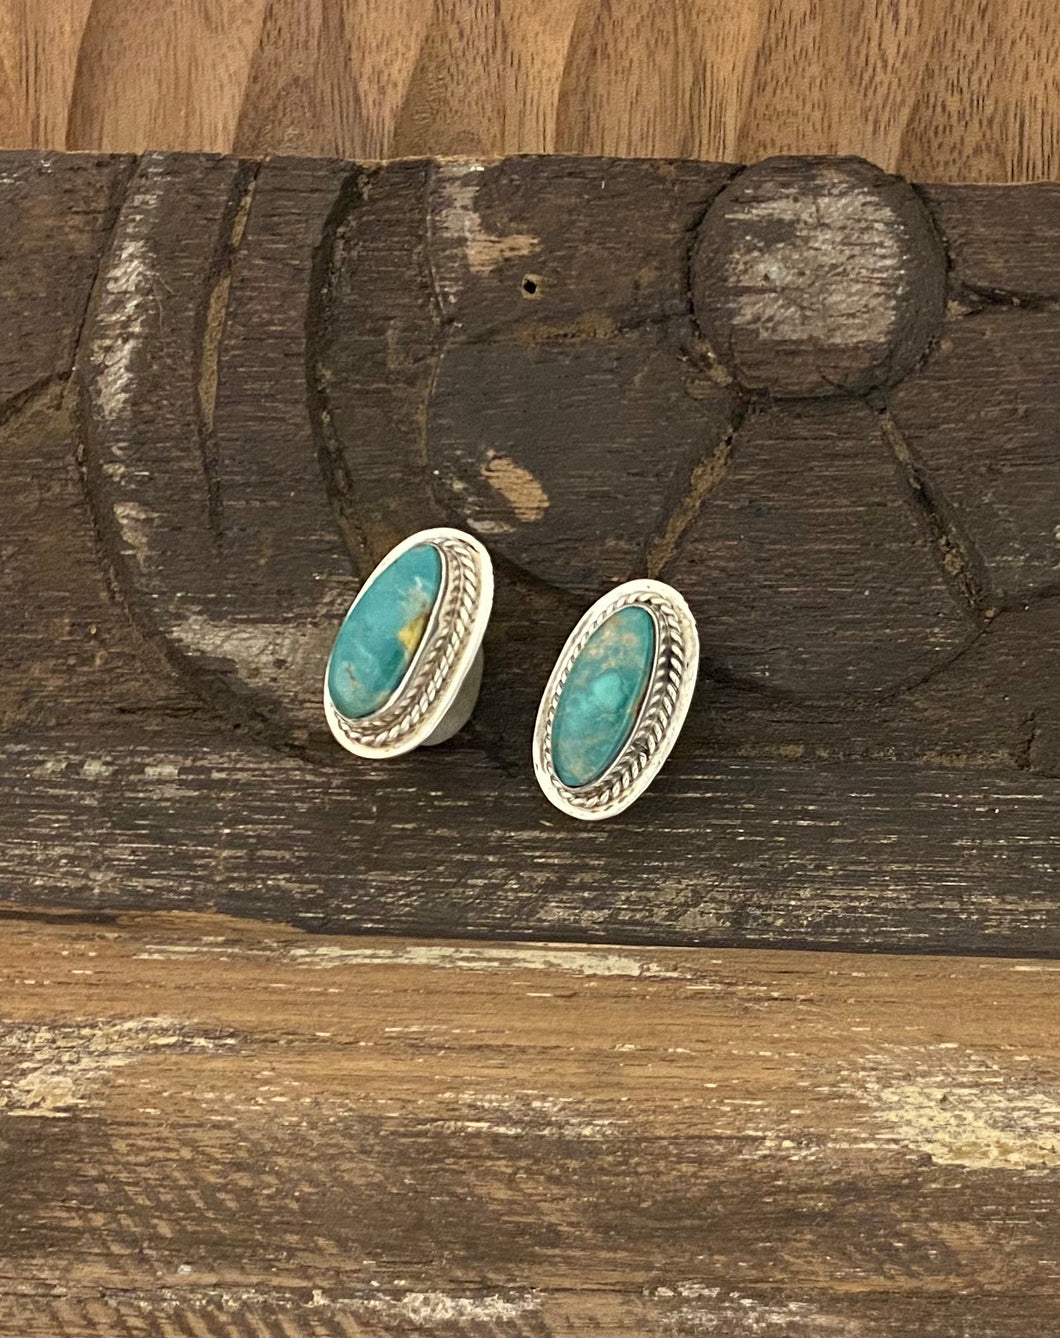 Earrings -Emerald Valley turquoise earrings on posts